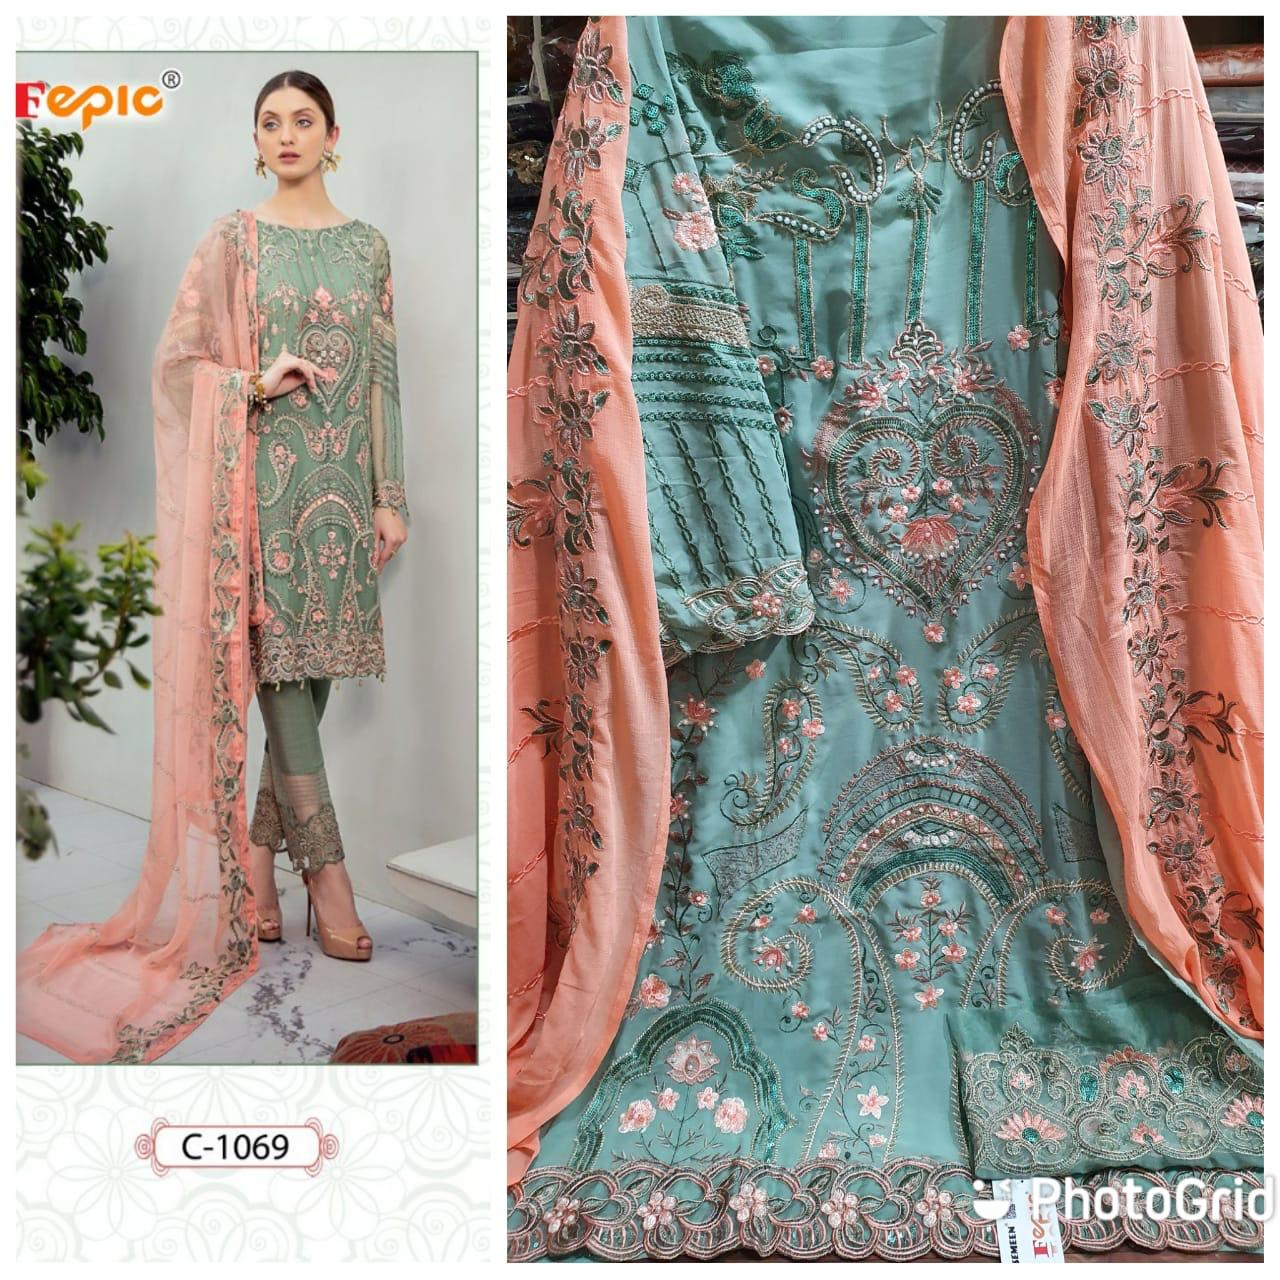 FEPIC C 1069 WHOLESALE PAKISTANI SUITS SUPPLIER (3)